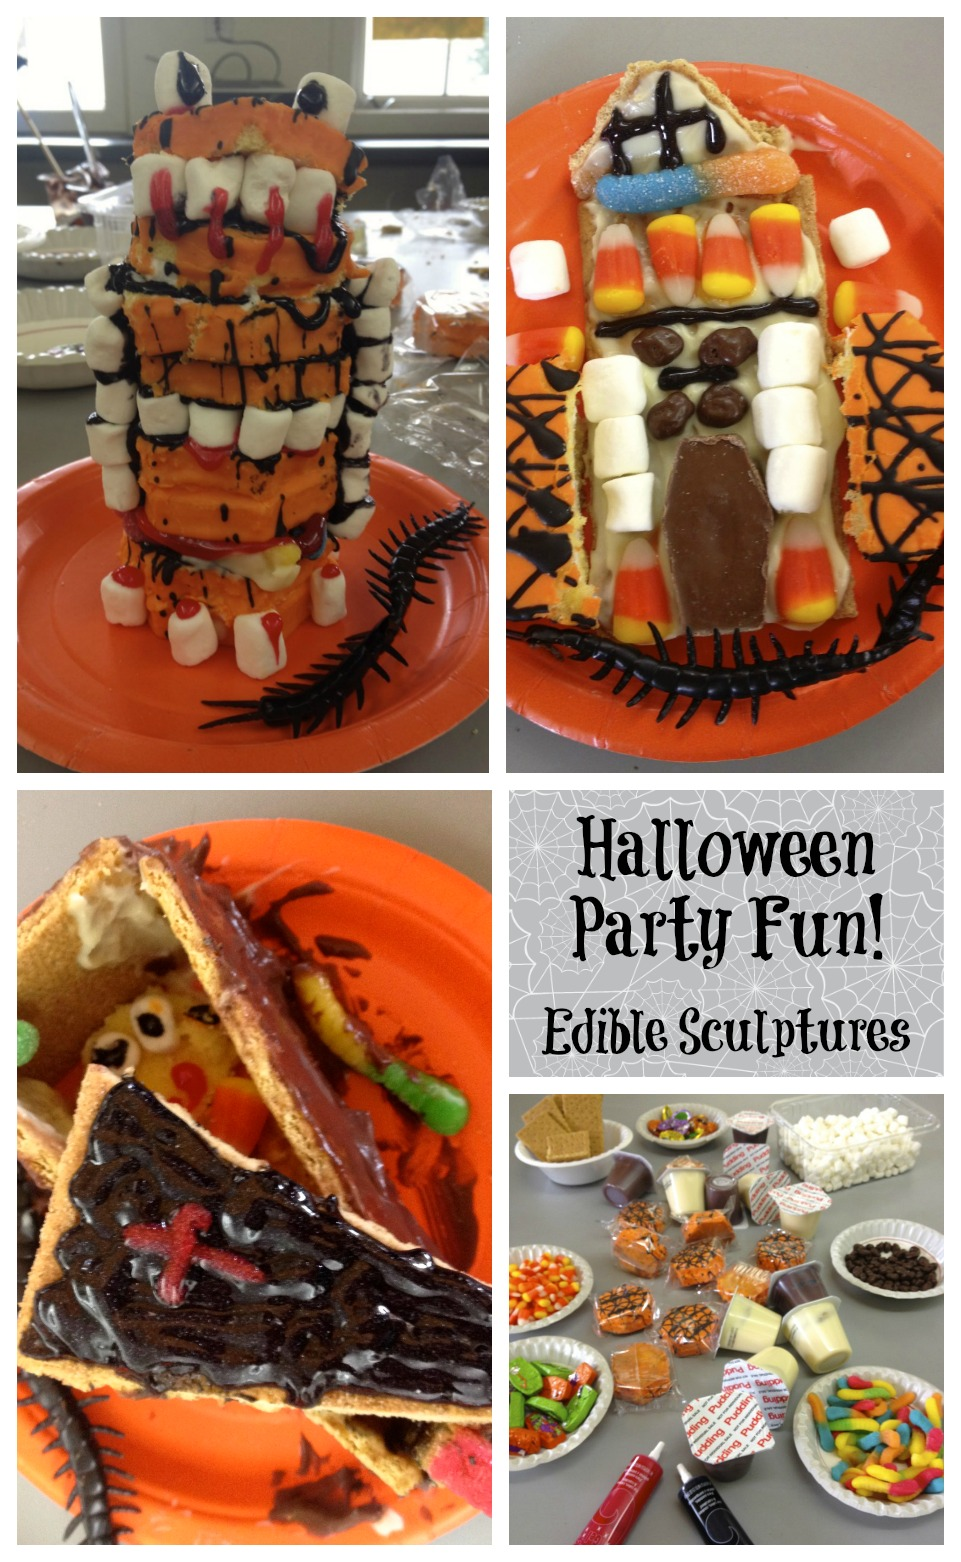 Halloween Party Fun - Edible Sculptures - Positively Stacey